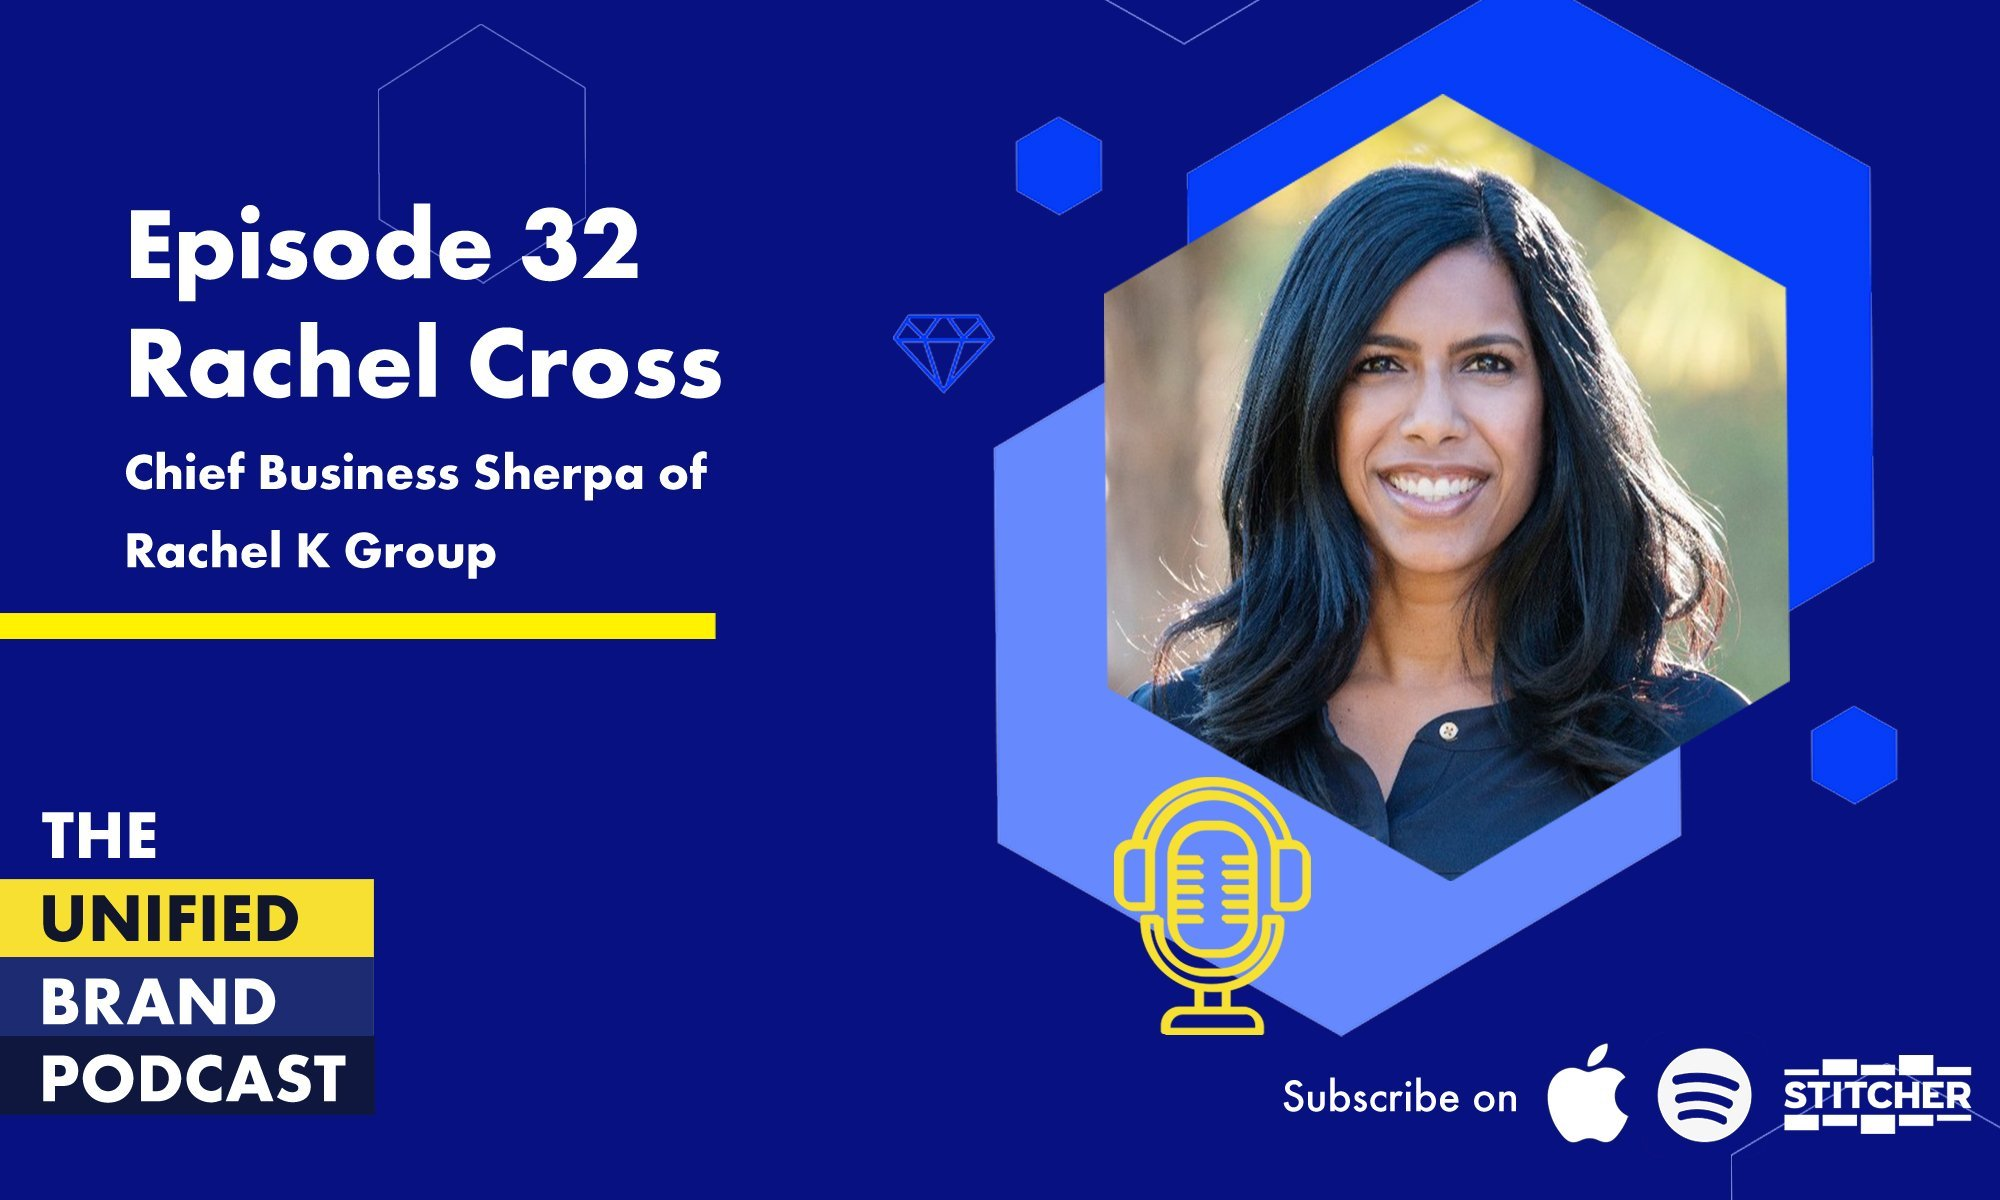 How to Develop an Authentic Brand Culture That Build Audience Trust With Rachel Cross